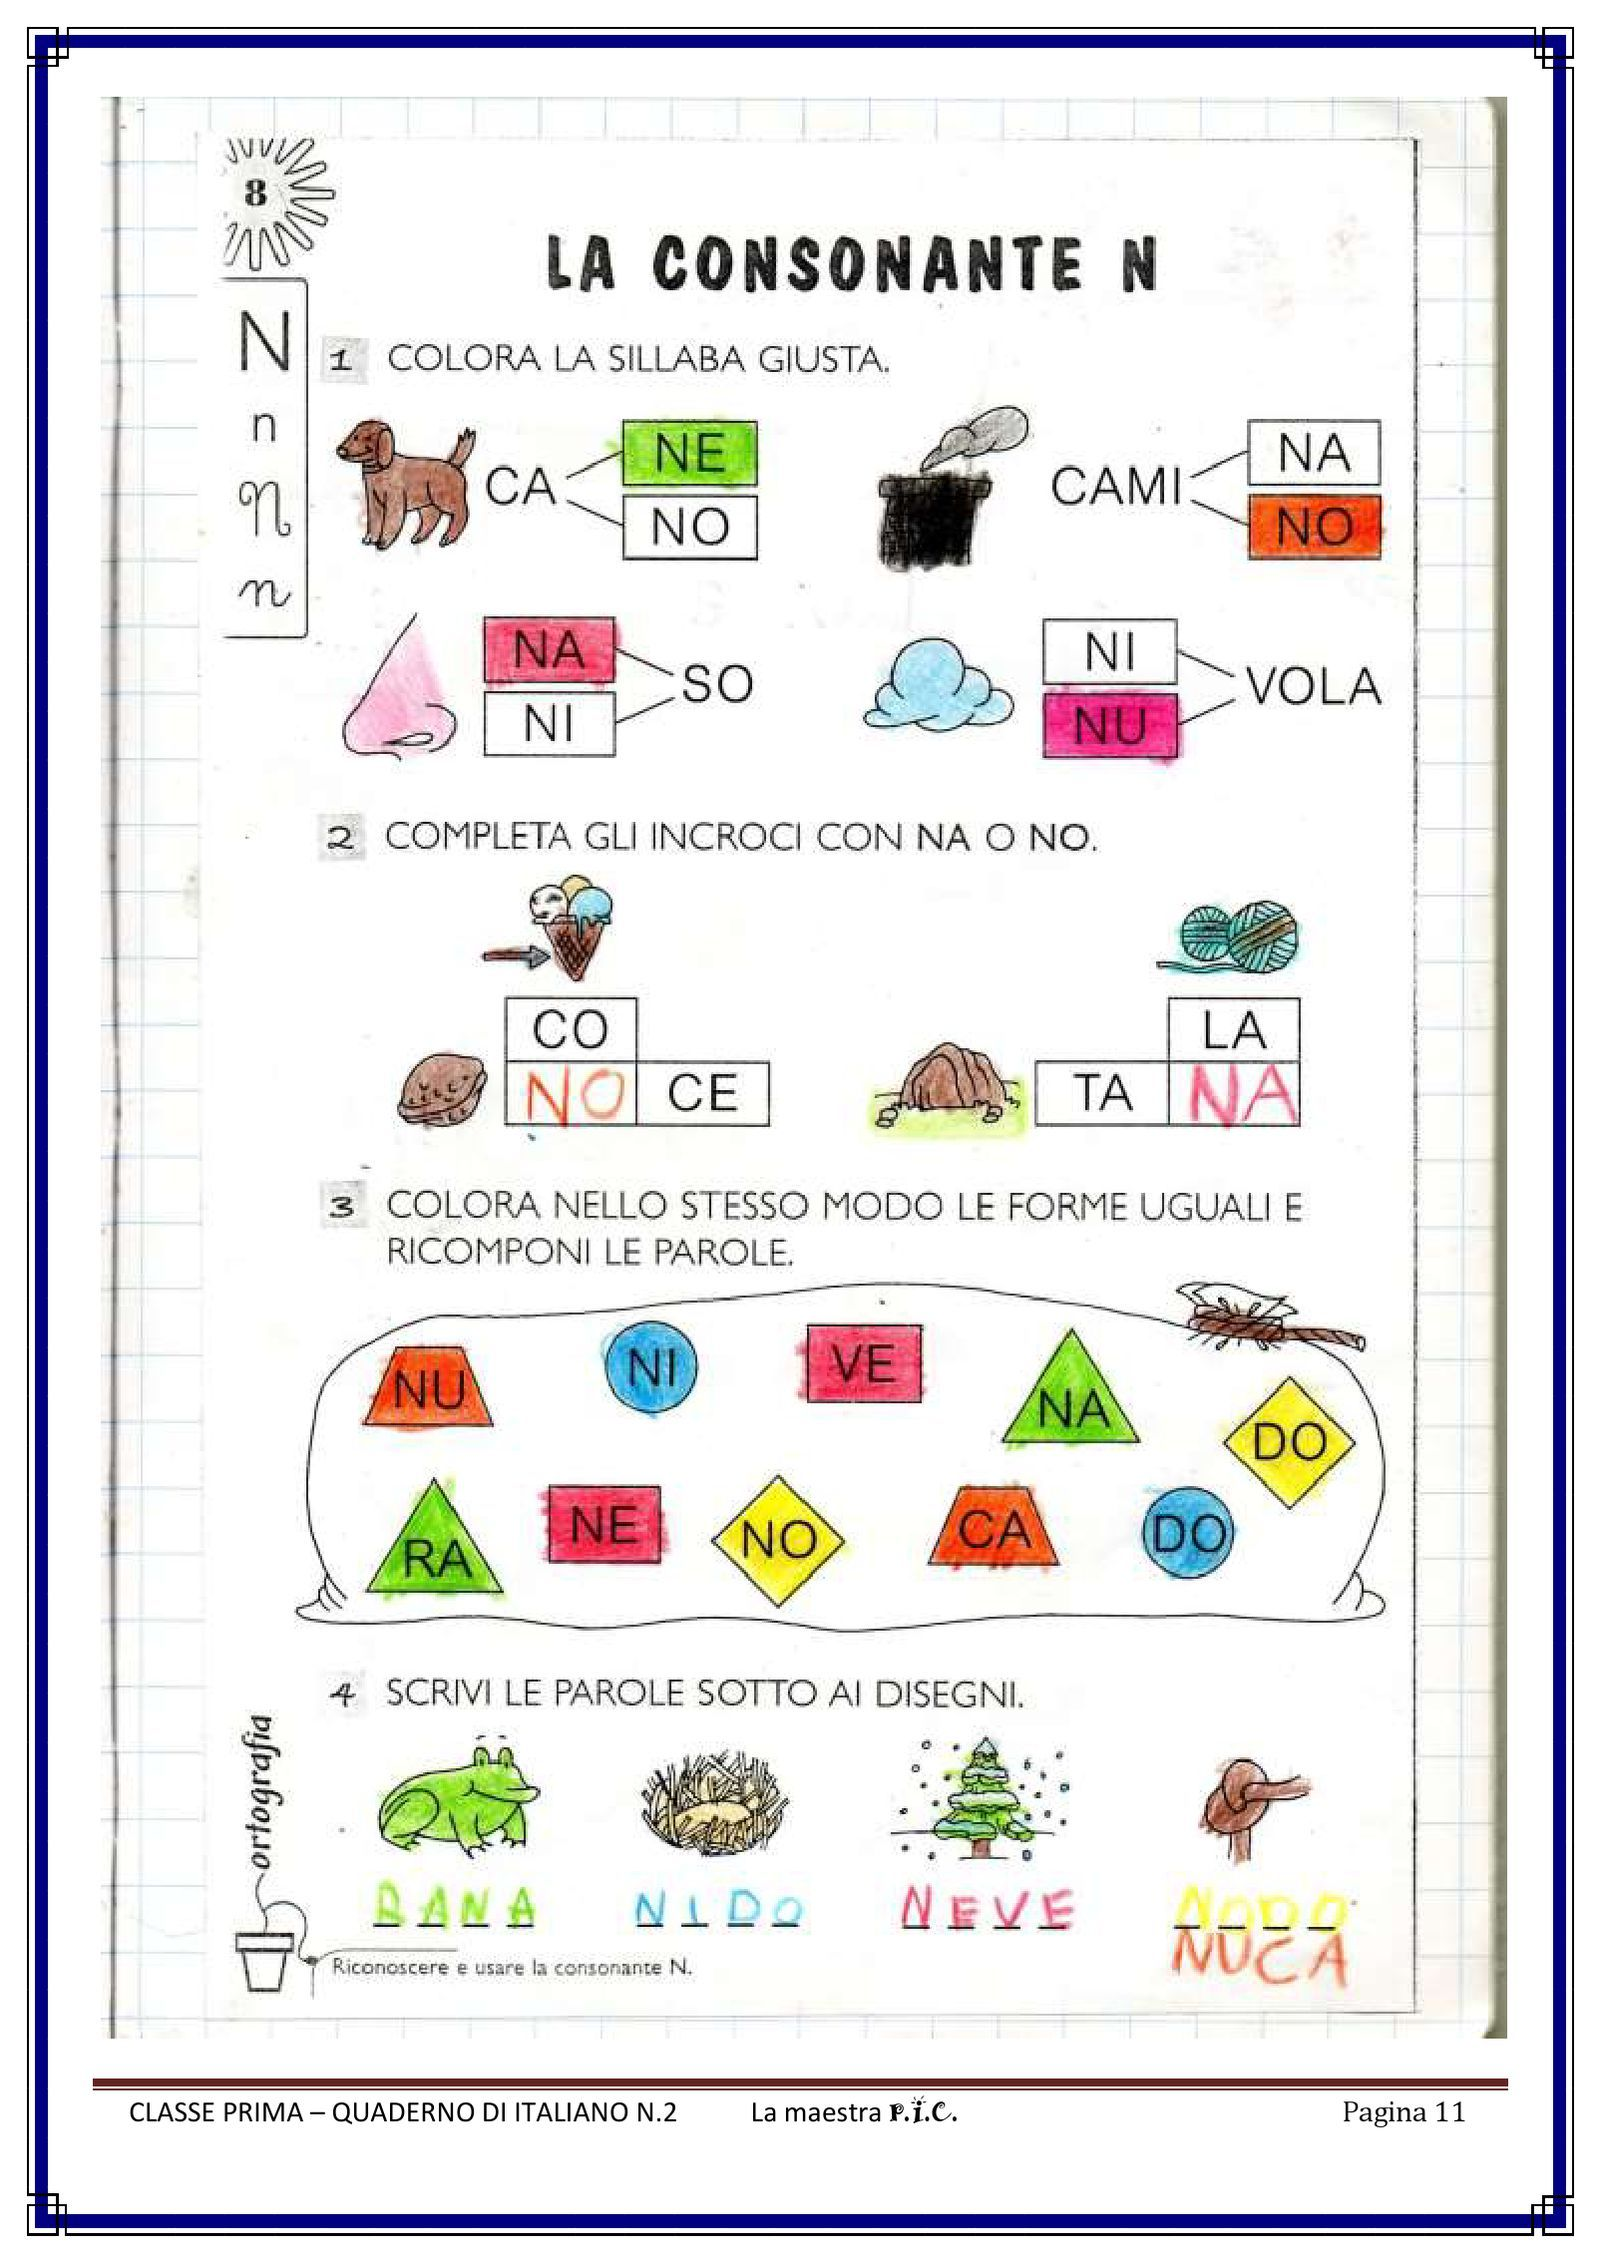 IL MIO QUADERNO DI ITALIANO PDF to Flipbook Quaderno